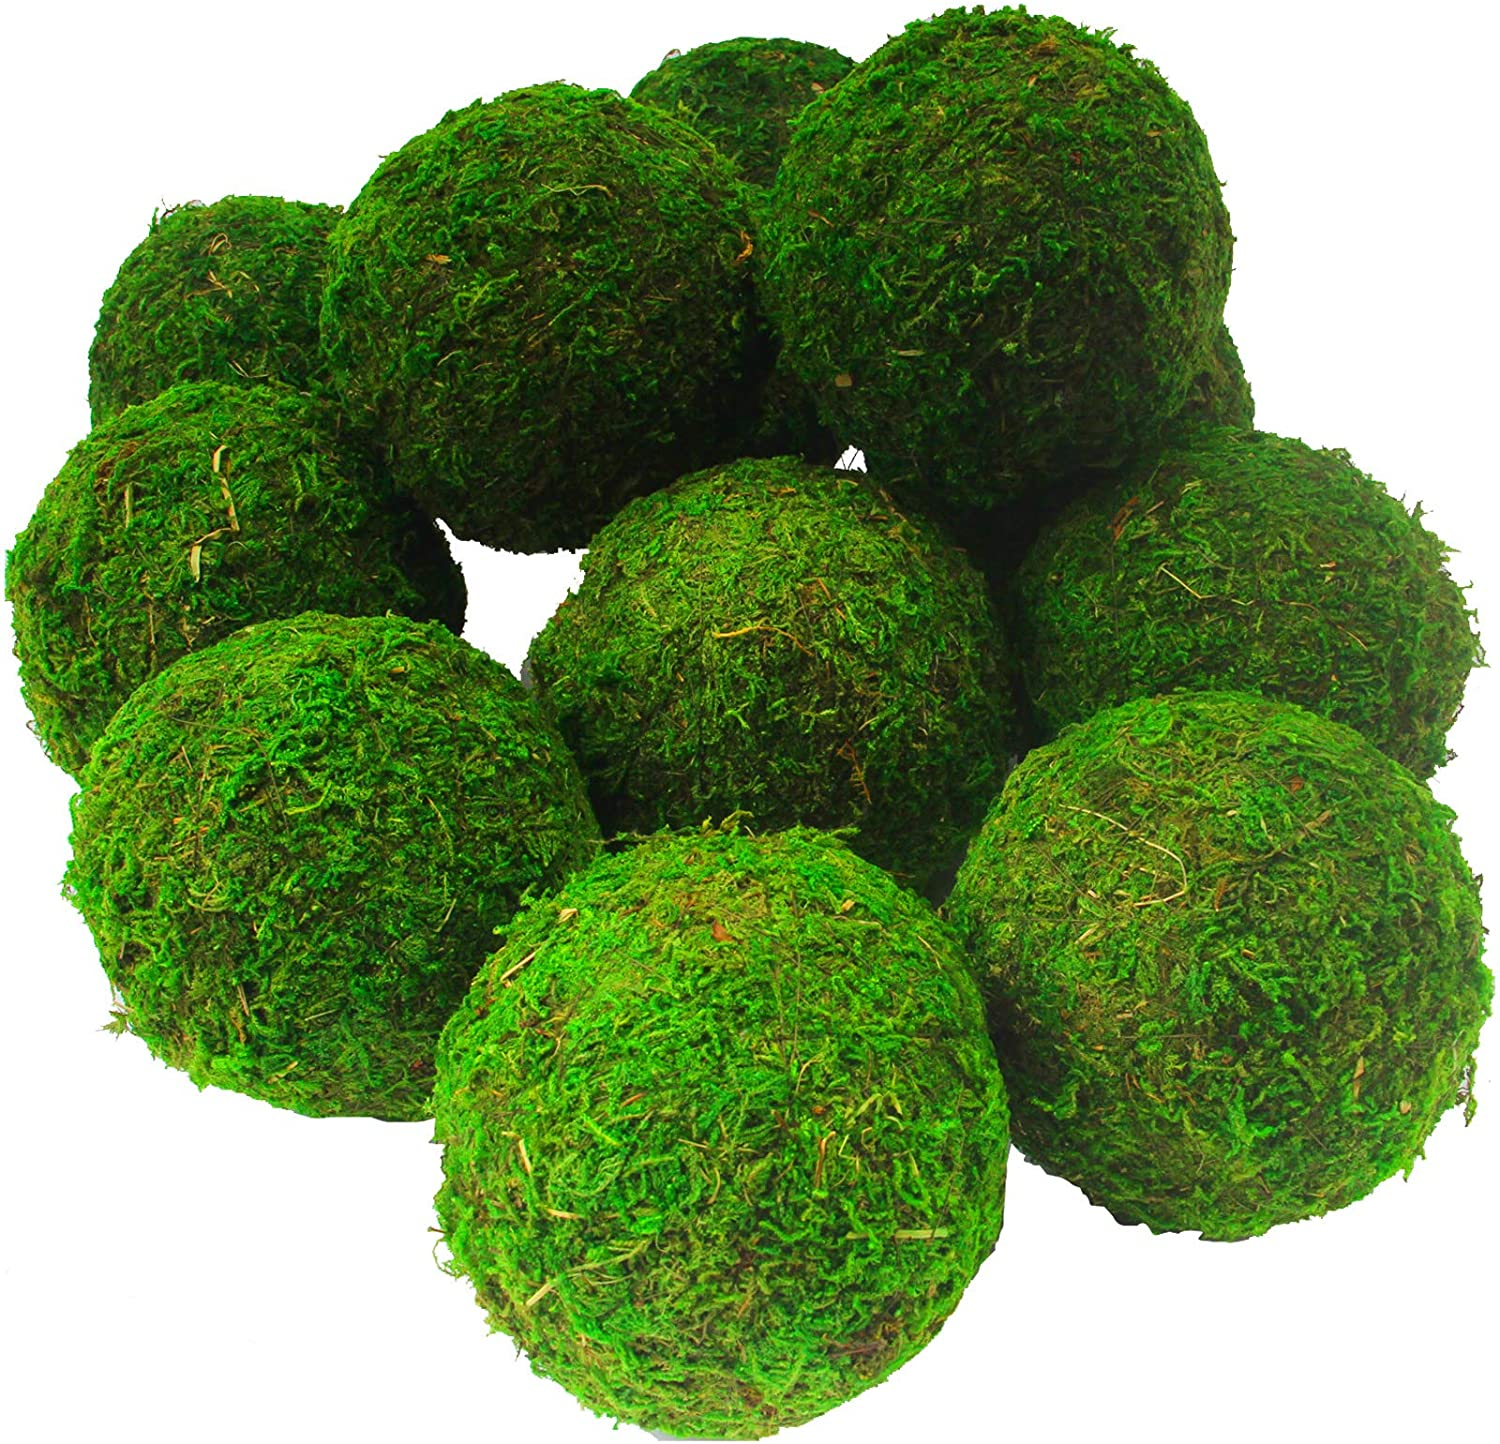 AMEICE Natural Green Moss Balls Handmade Decorative Authentic Real Preserved Moss Hanging Balls for Garden Patio Home Table Decor Party &Weddings Display Props Farmhouse Style Decor (MossBall3.2-6)